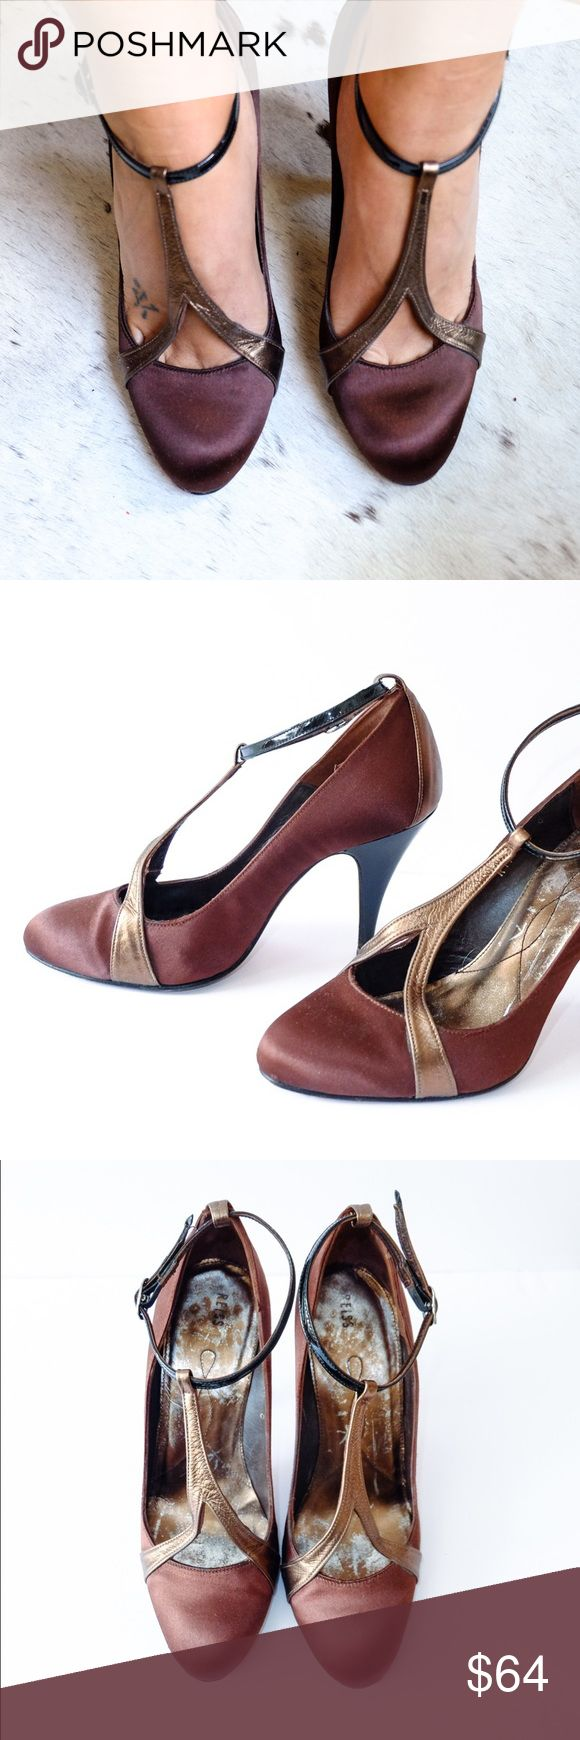 REISS Satin Bronze Ankle Strap Pumps Brown/Bronze satin pumps from REISS with black patent ankle strap. Similar to a Mary Jane style. Wear is mainly the fading color on the inside, but shoes aren't damaged, only worn a few times. Saron exterior in great shape, no rips or tears. Scuff on soles, no box. Heel is 3-4in. Reiss Shoes Heels